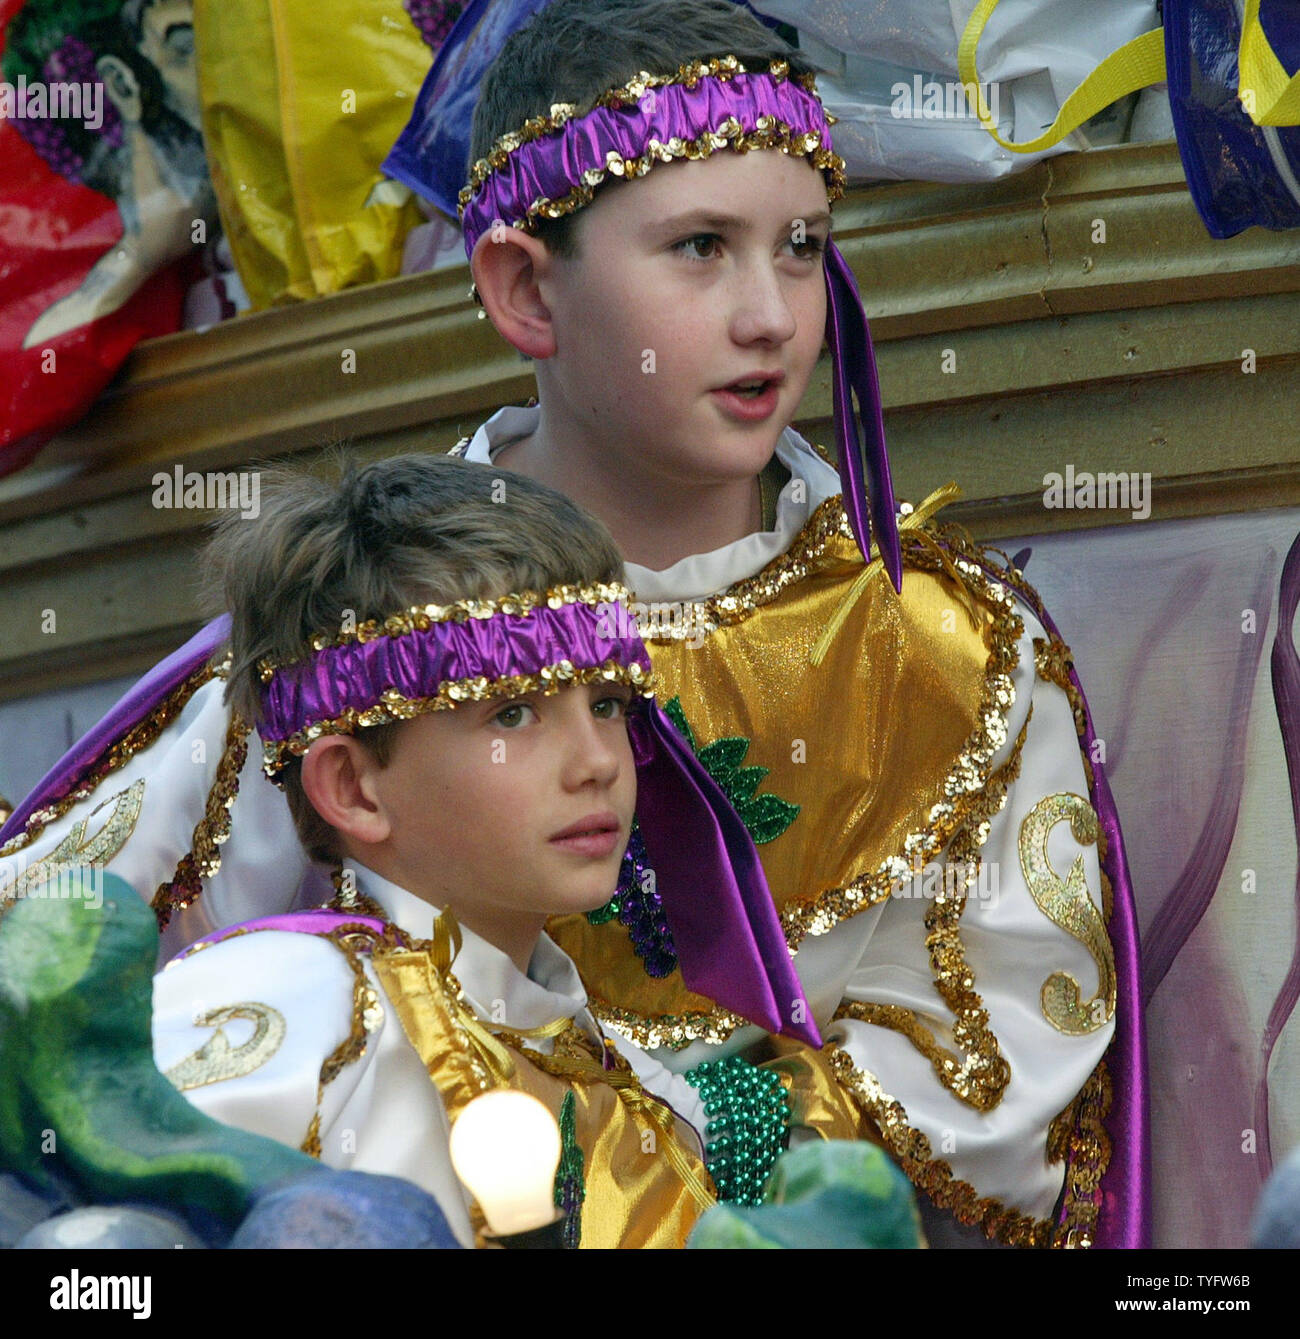 """Members of the krewe of Bacchus parade in Uptown New Orleans February 22, 2004. The Krewe of Bacchus always has a guest celebrity reigning as Bacchus, this year it was Actor Elijah Wood, star of the """"Lord of the Rings"""" movies. Fat Tuesday is February 24.  (UPI Photo / A.J. Sisco) Stock Photo"""